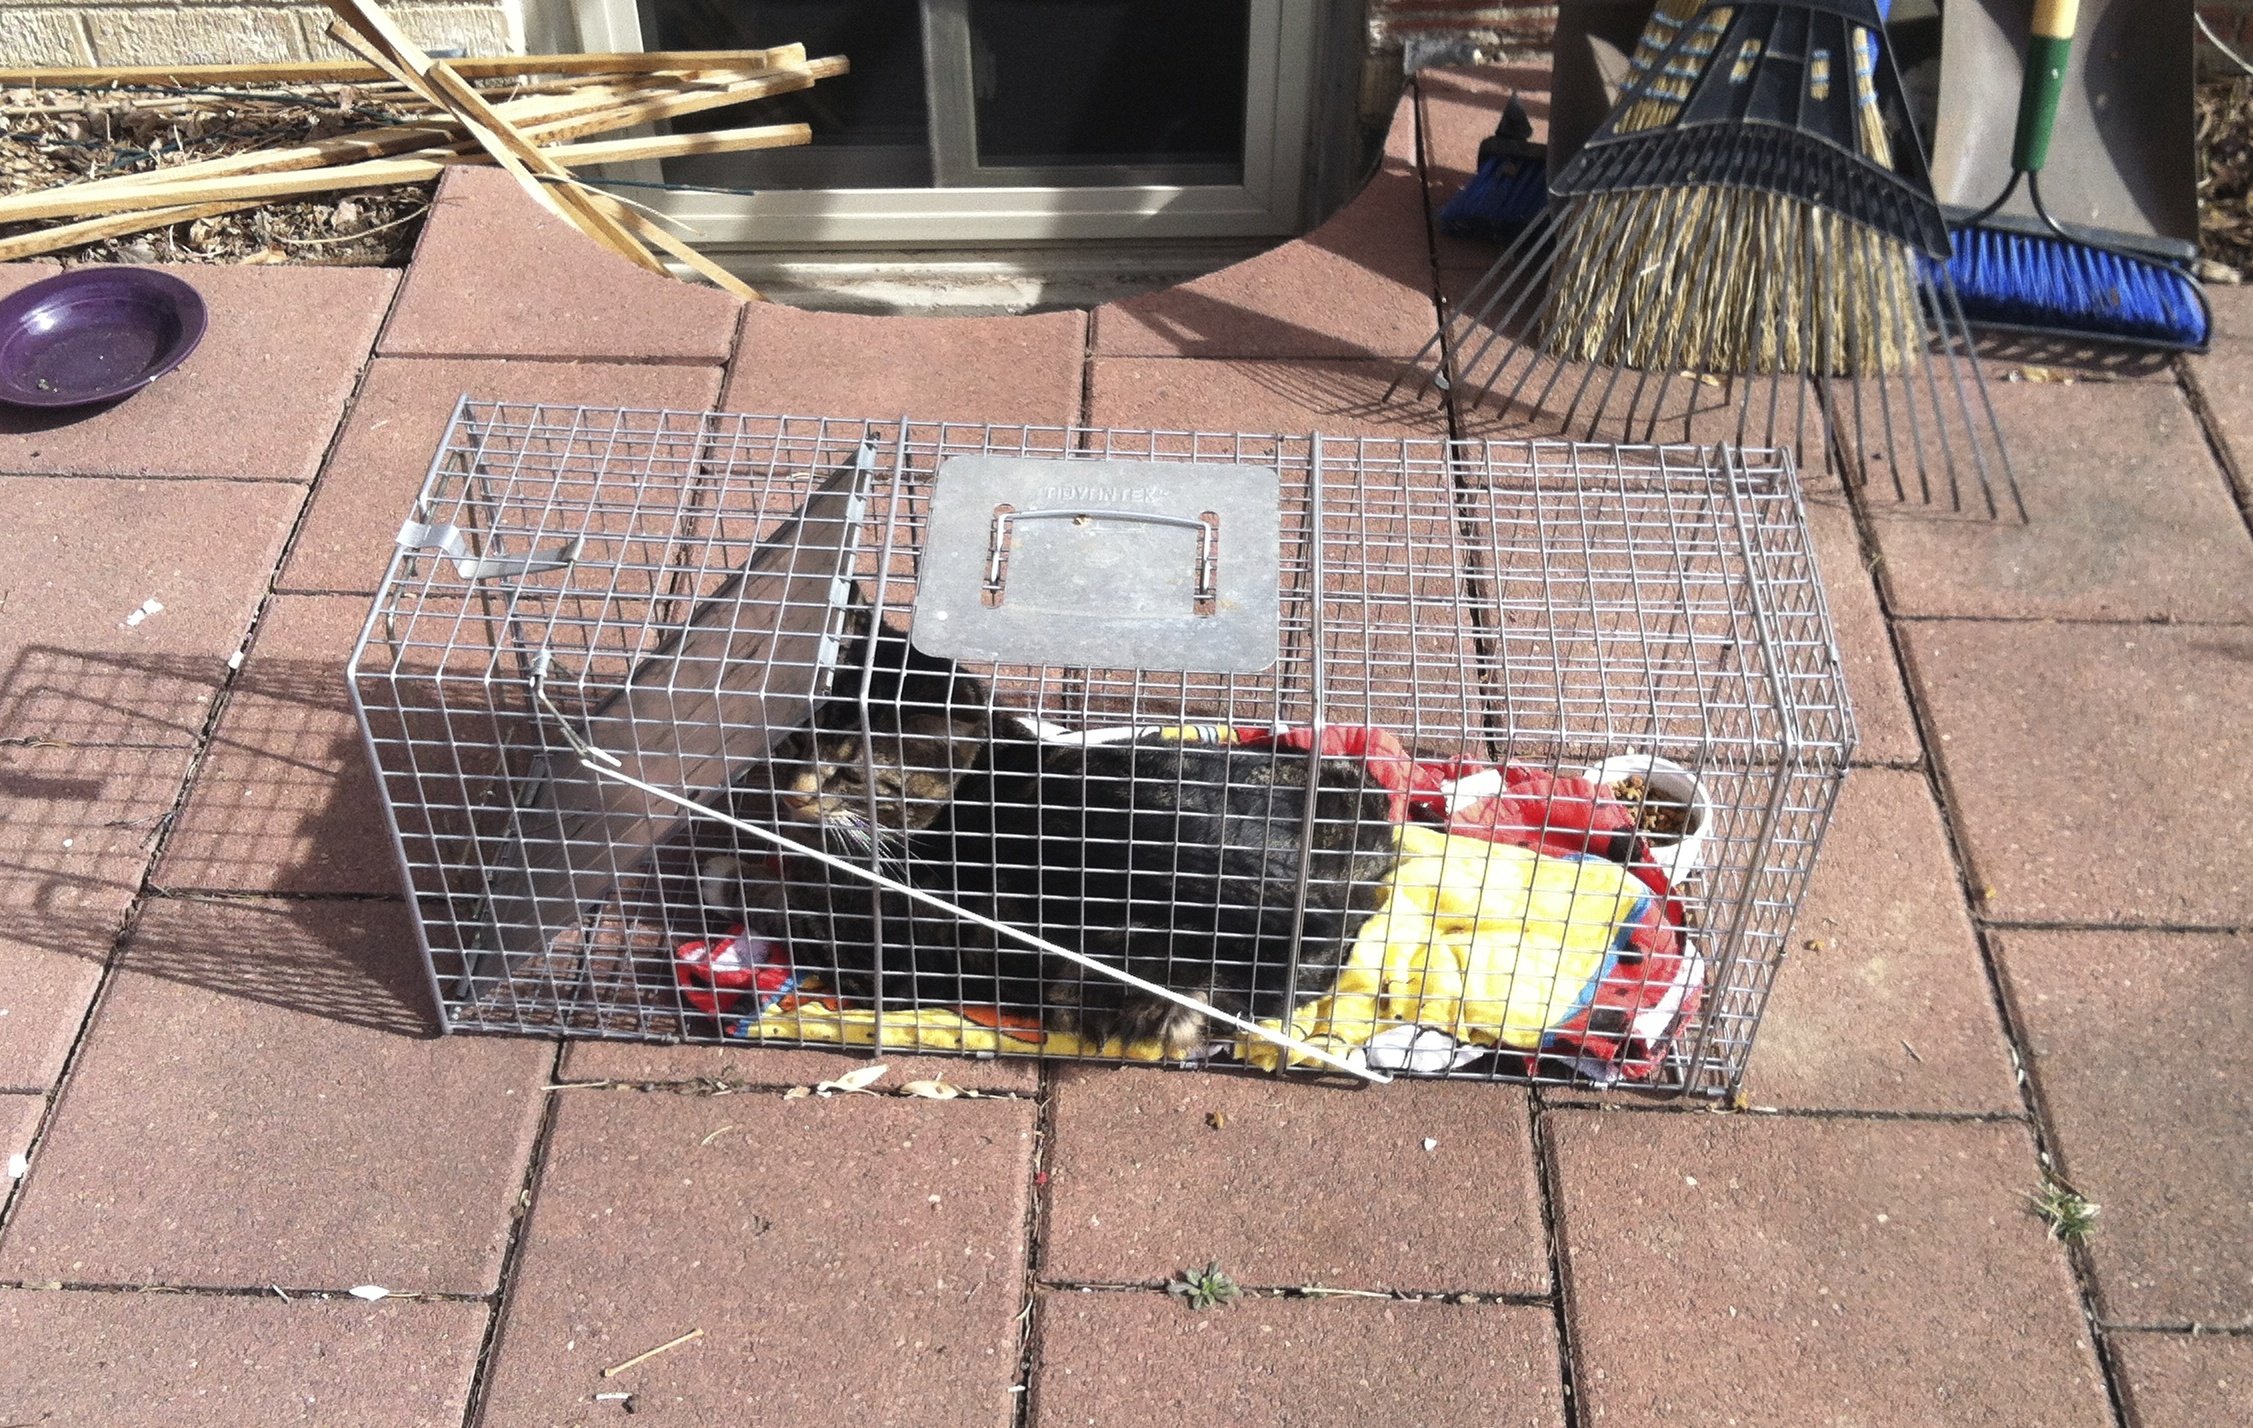 Using my Superpowers for Good Rescuing a Stray Cat – Jennifer